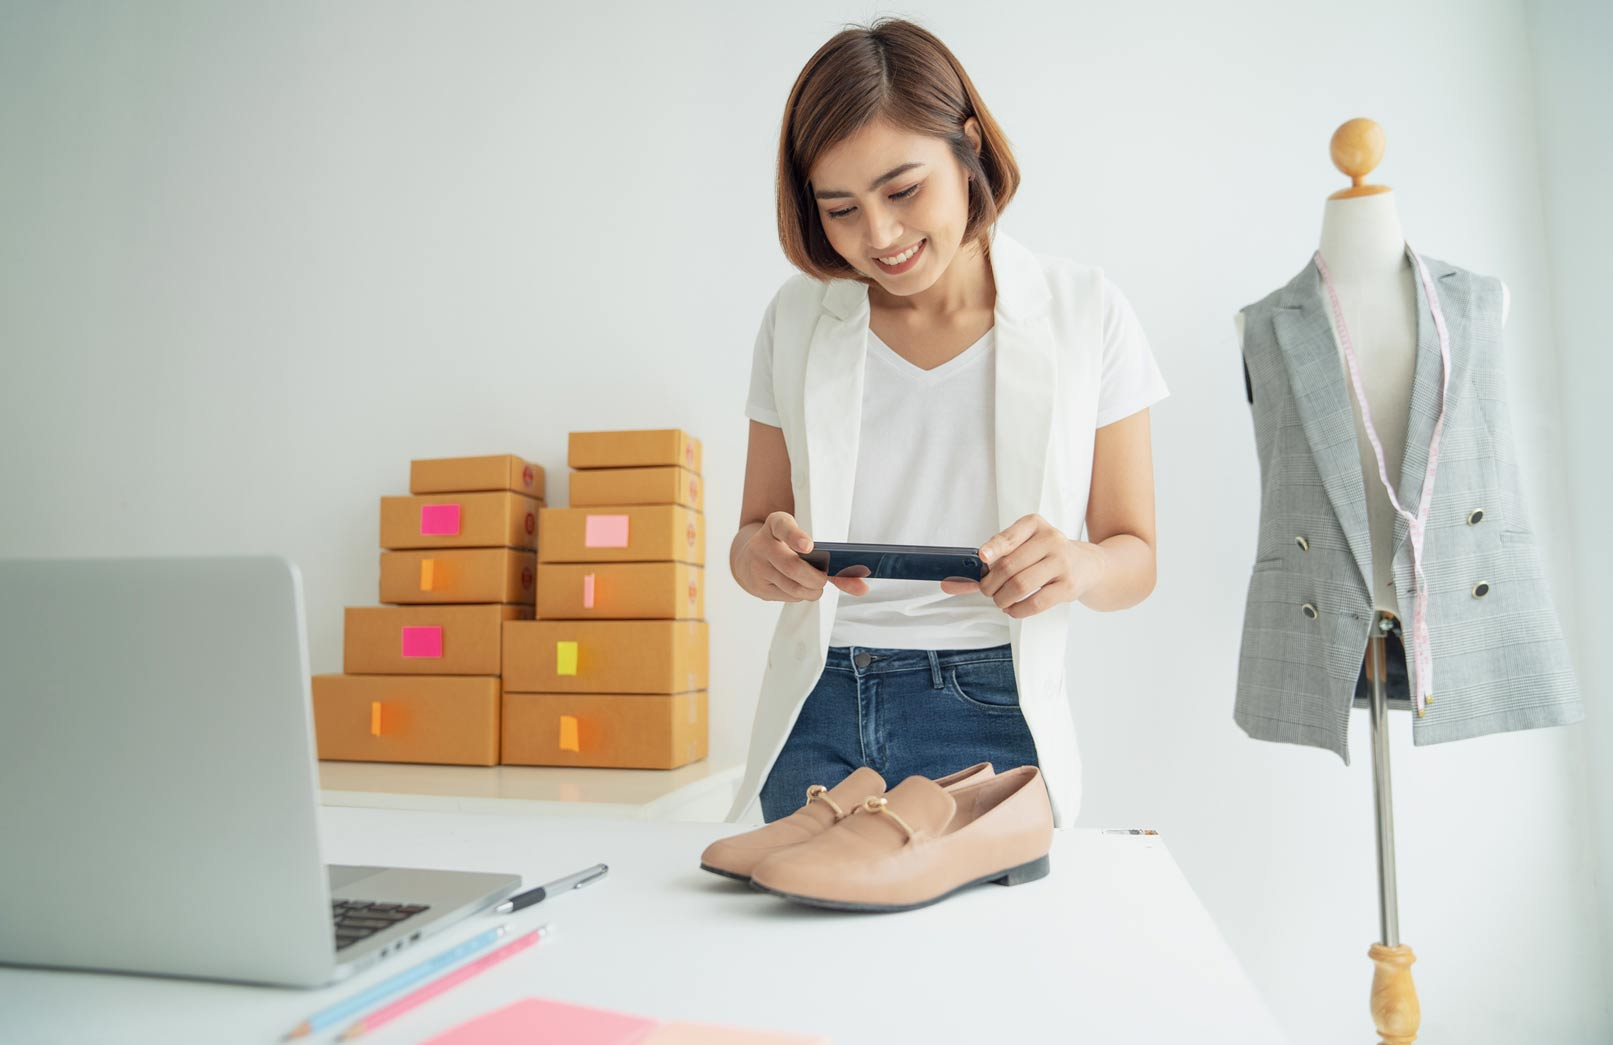 How to get the best price for your item